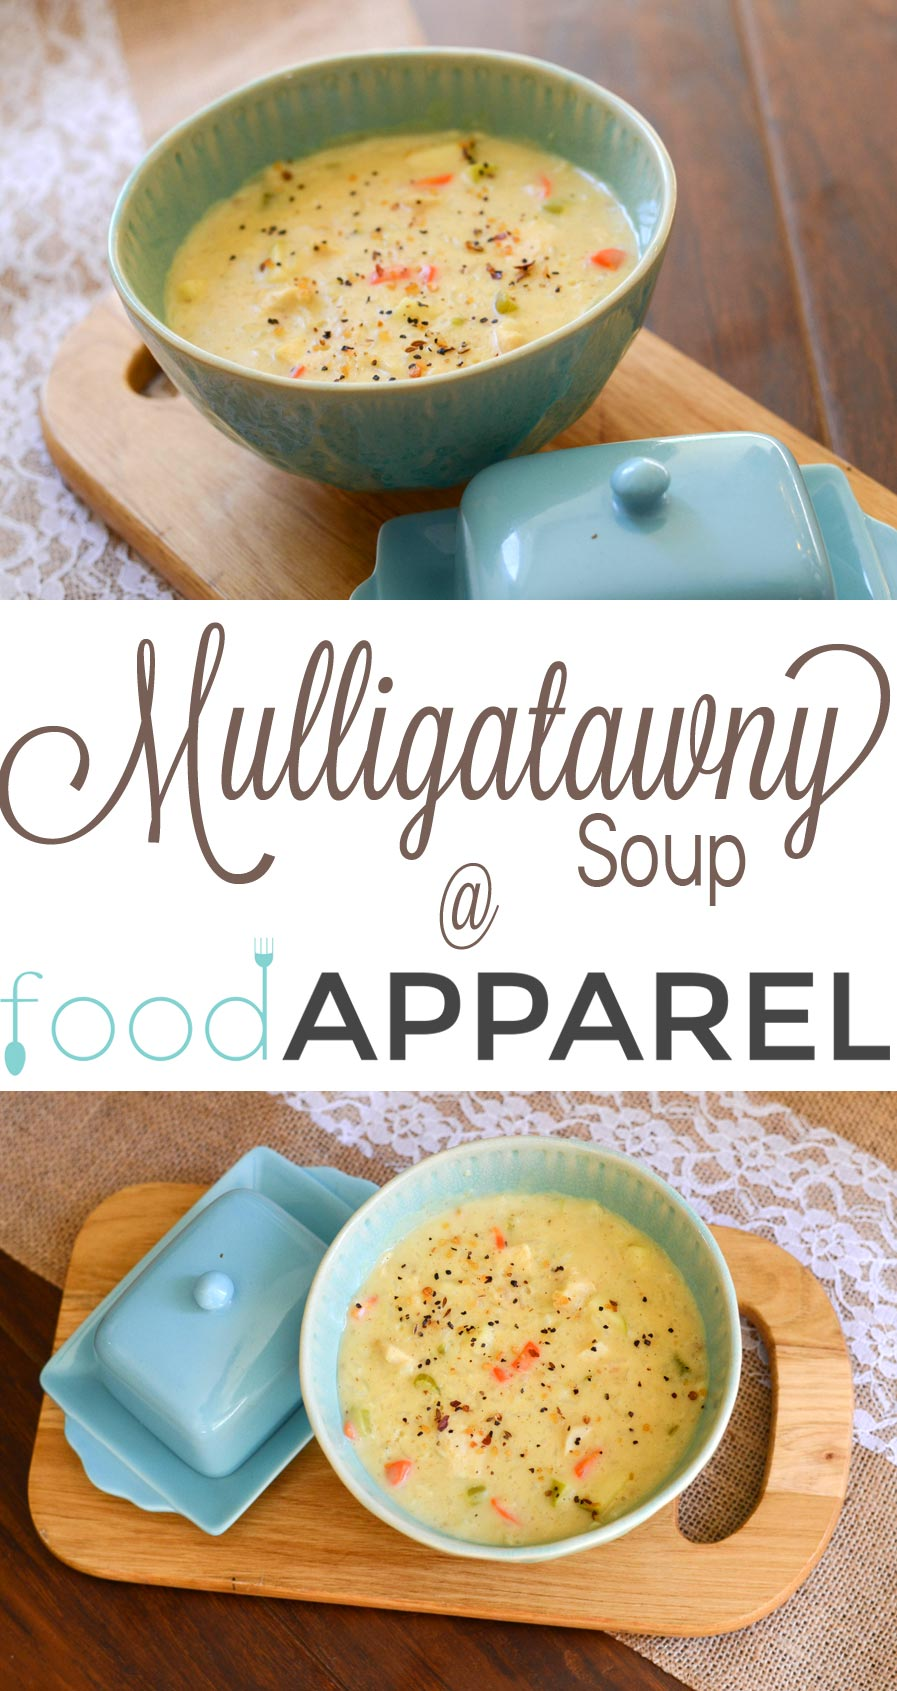 Chef Wong's Famous Mulligatawny Soup Recipe - a curry based soup that is oh so delish!